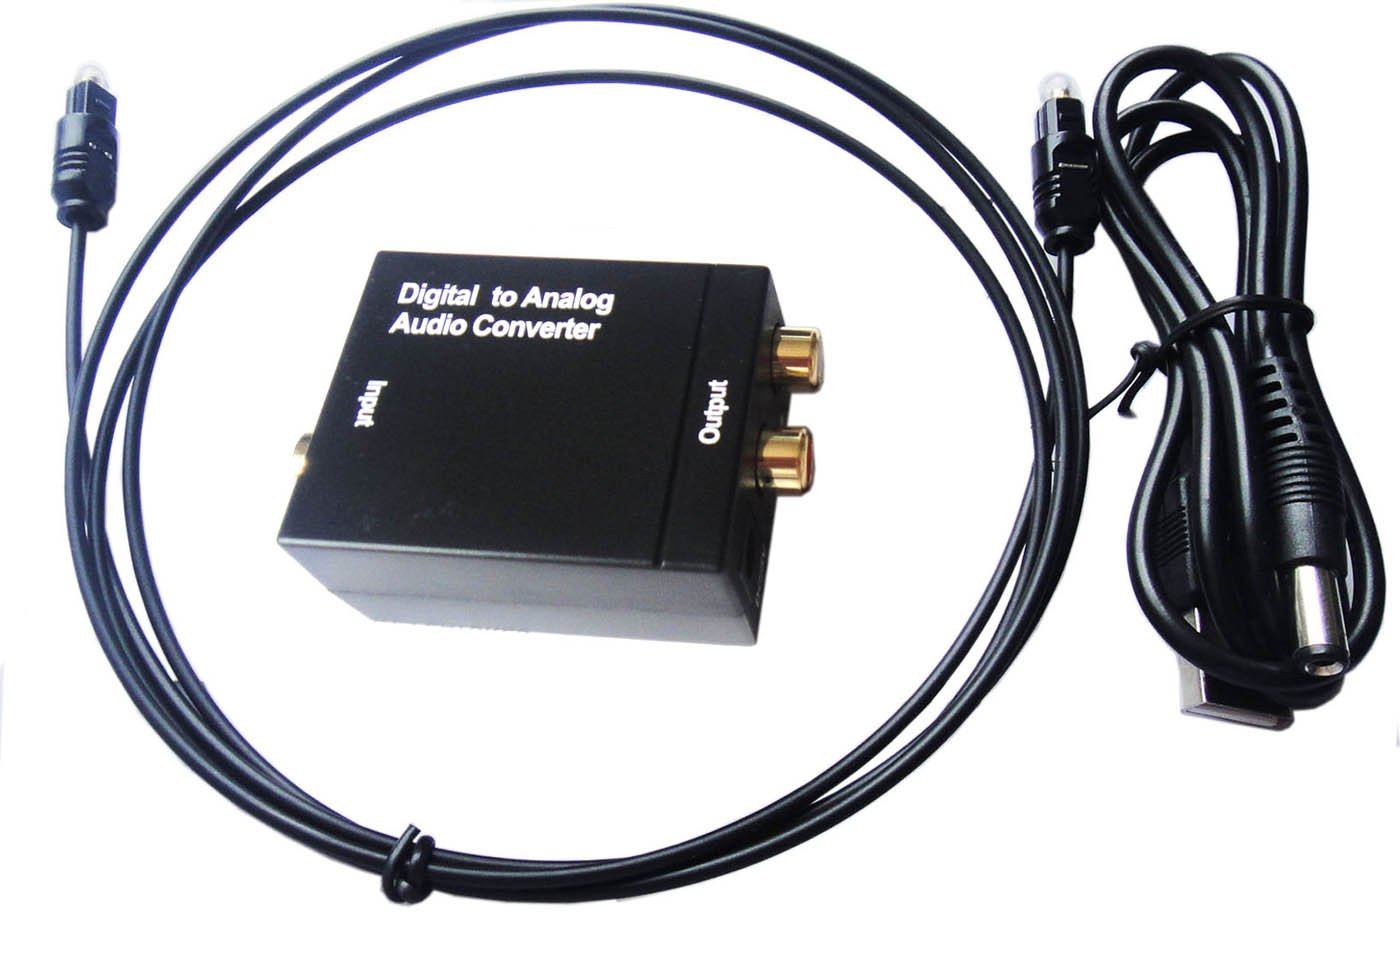 SKN Digital to Analog Audio Konverter Wandler Adapter Toslink SPDIF Koaxial RCA R/L: Amazon.es: Electrónica